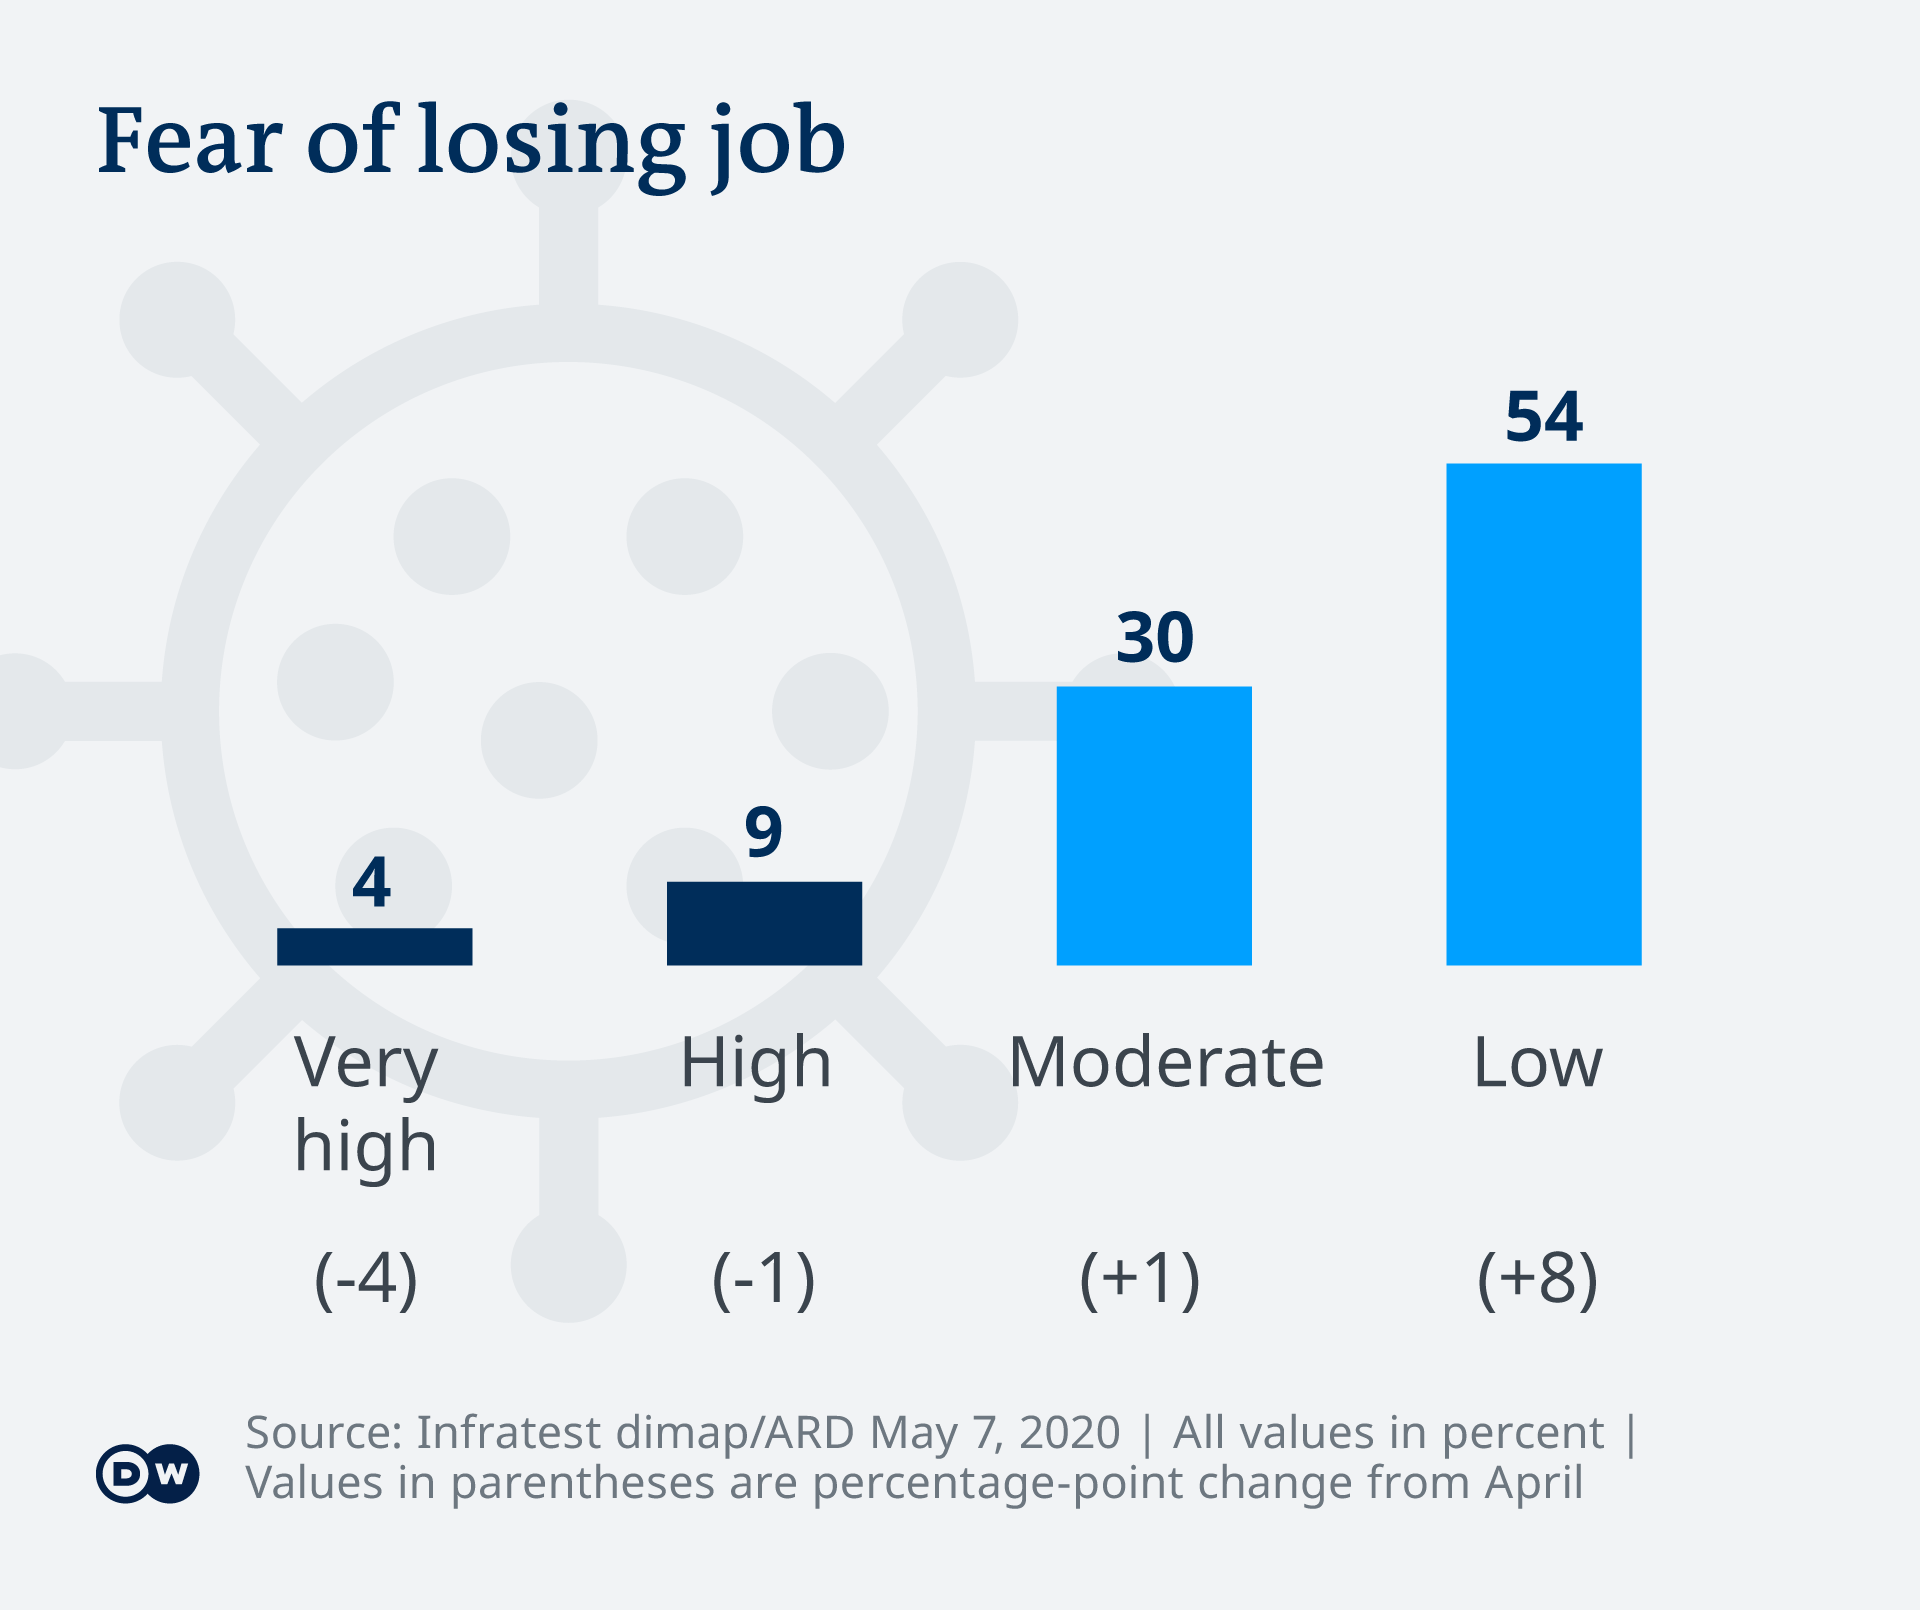 graphic on fear of job losses